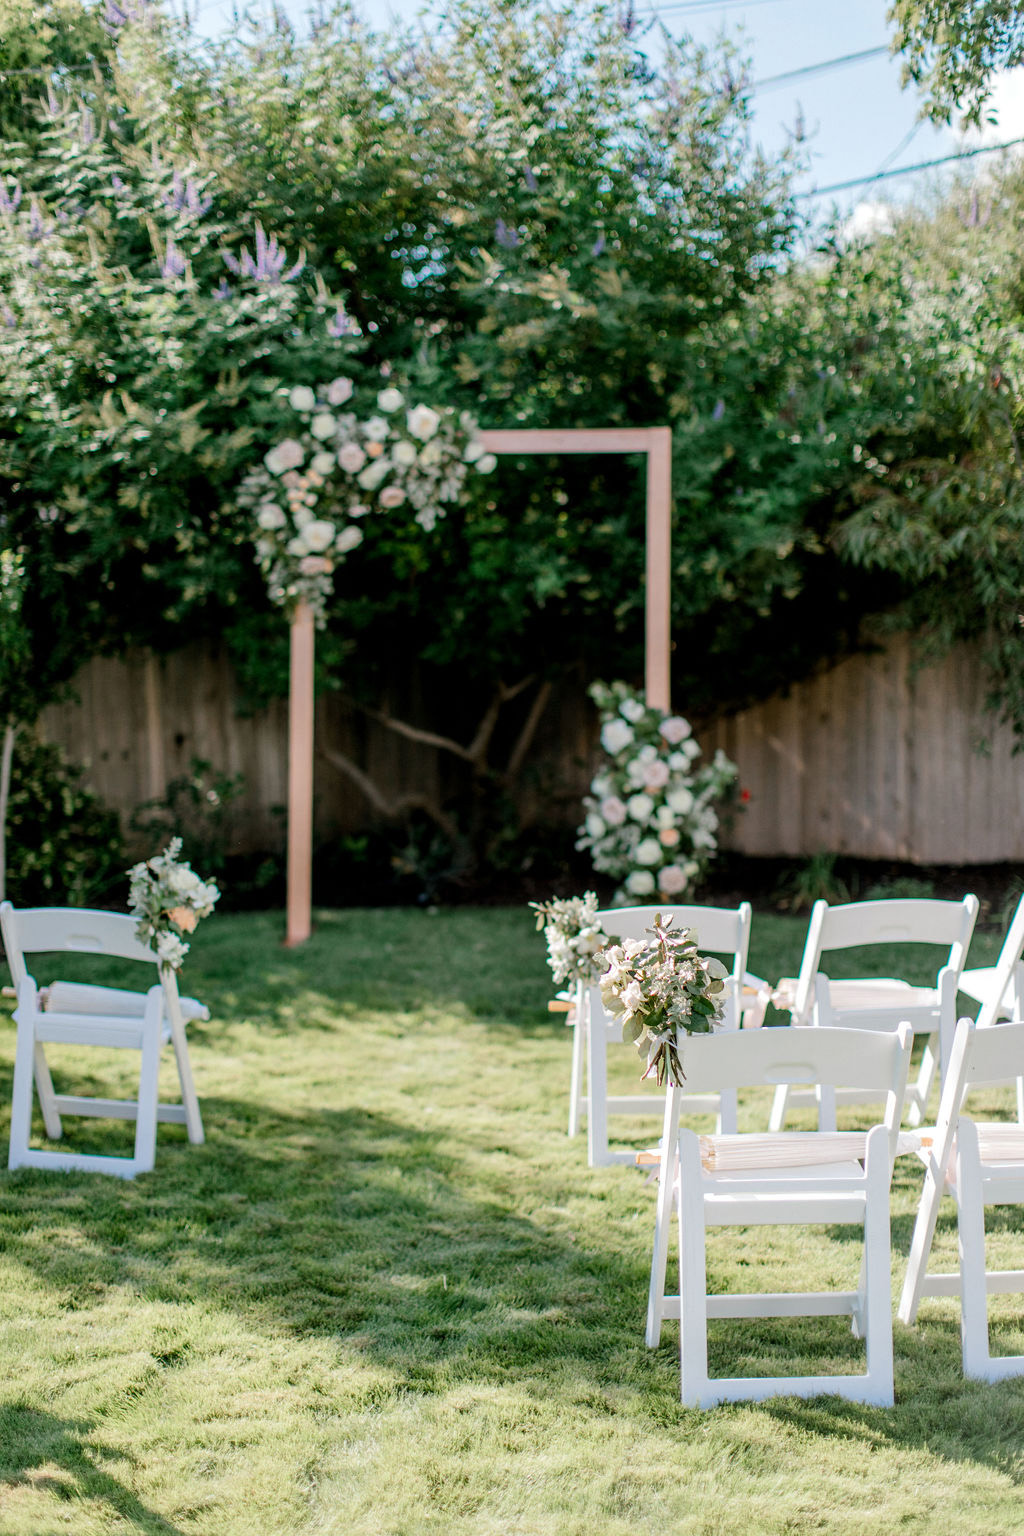 wooden ceremony arch with floral decor in front of white chair seating area